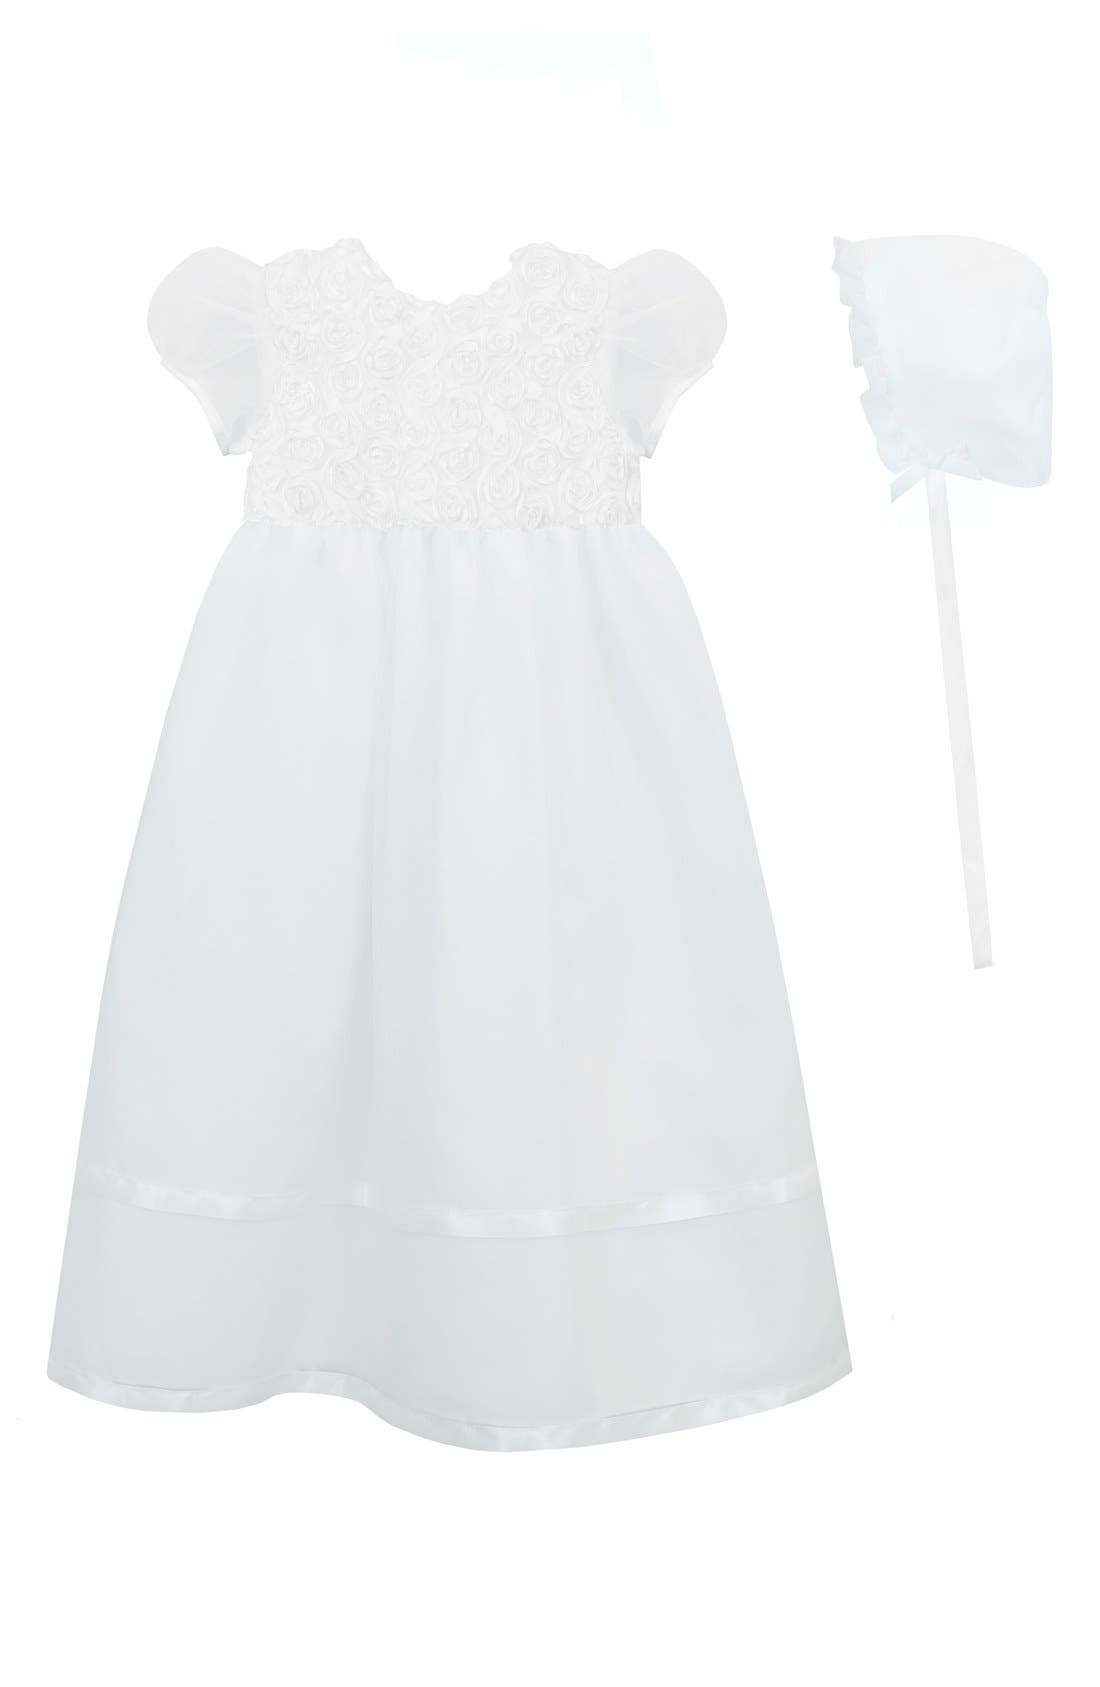 C.I. Castro & Co. Christening Gown & Bonnet (Baby)